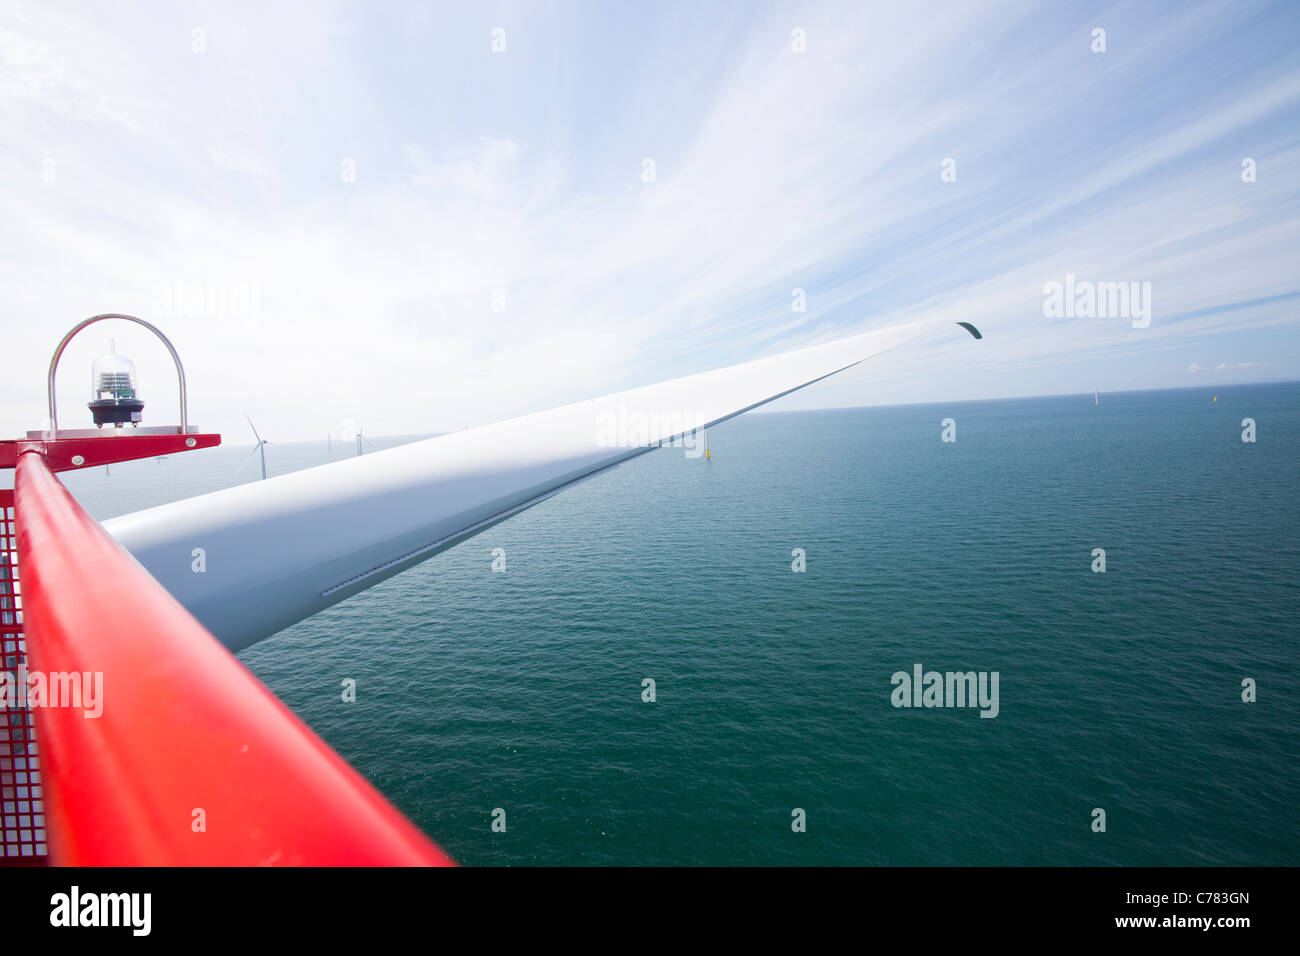 The blade of a wind turbine from the nacelle, in the Walney offshore wind farm, Cumbria, UK. - Stock Image